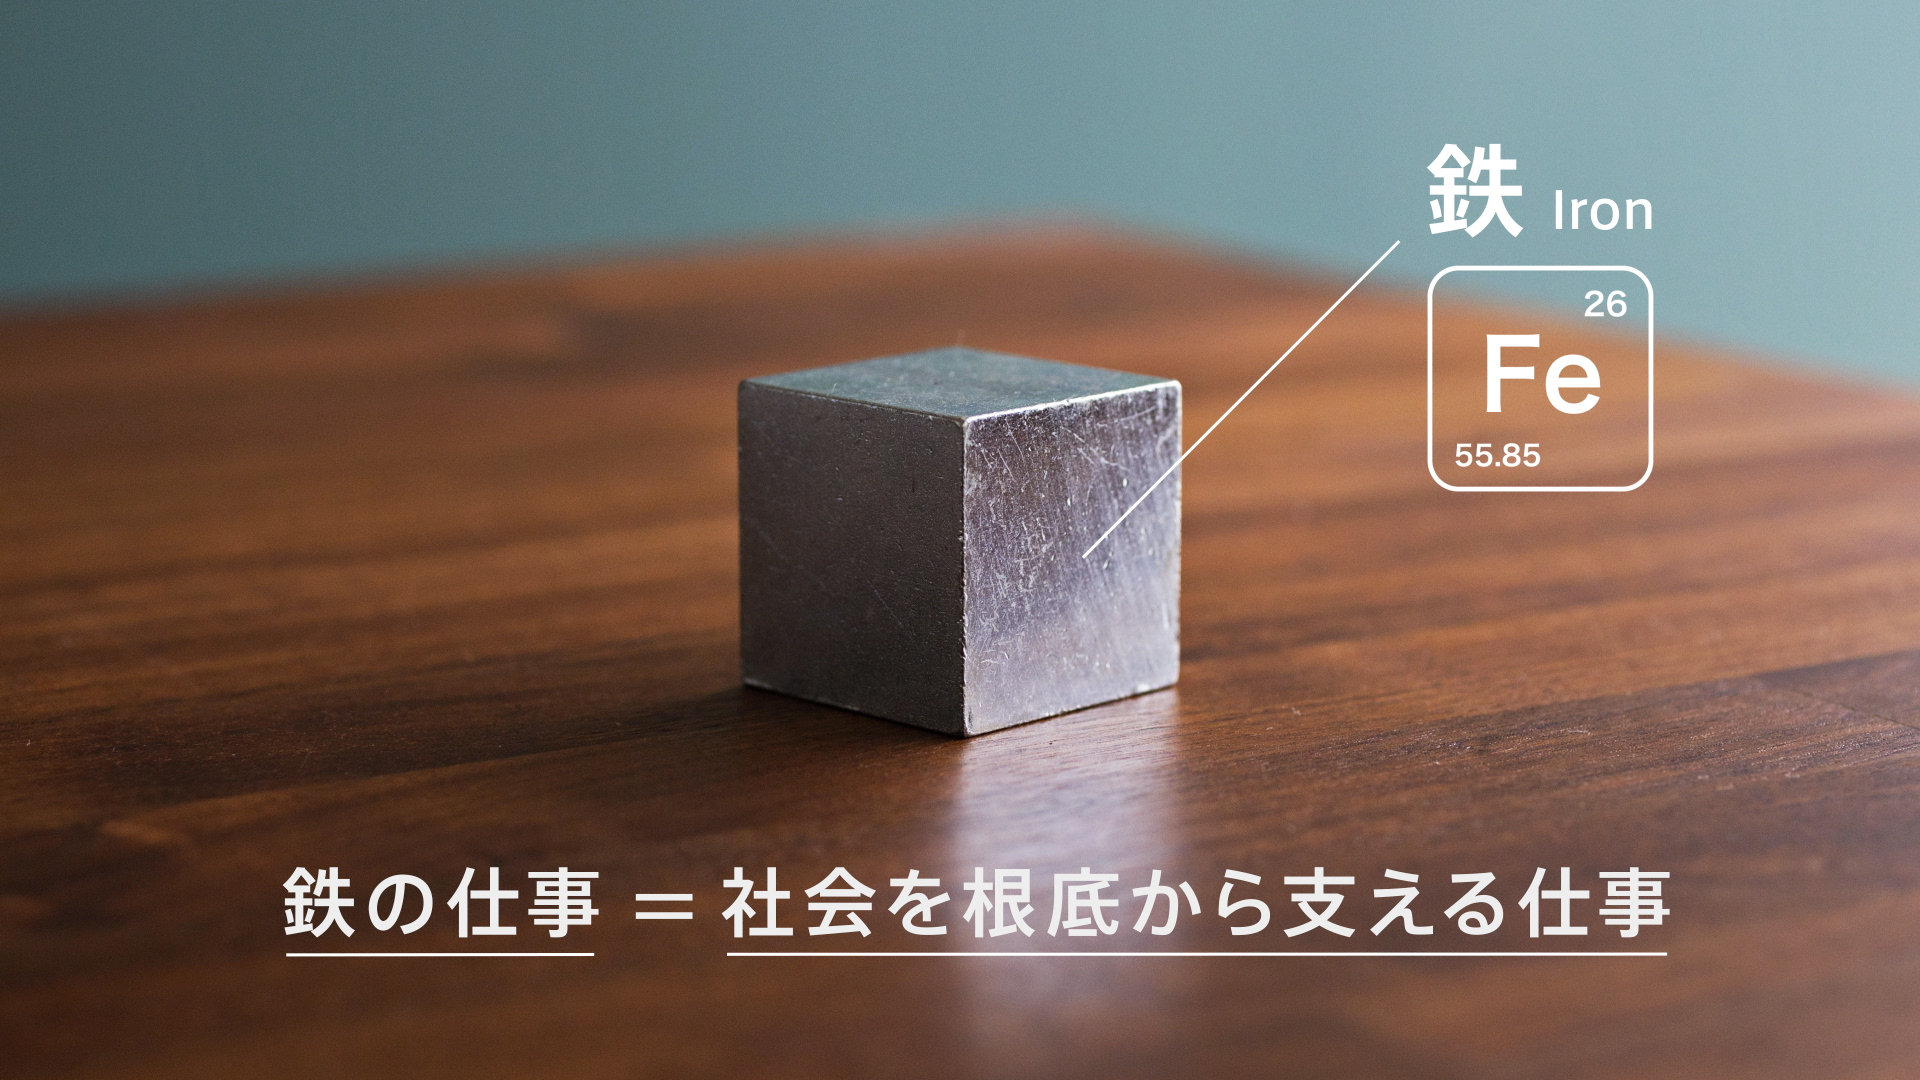 JFE Steel IRON CUBE